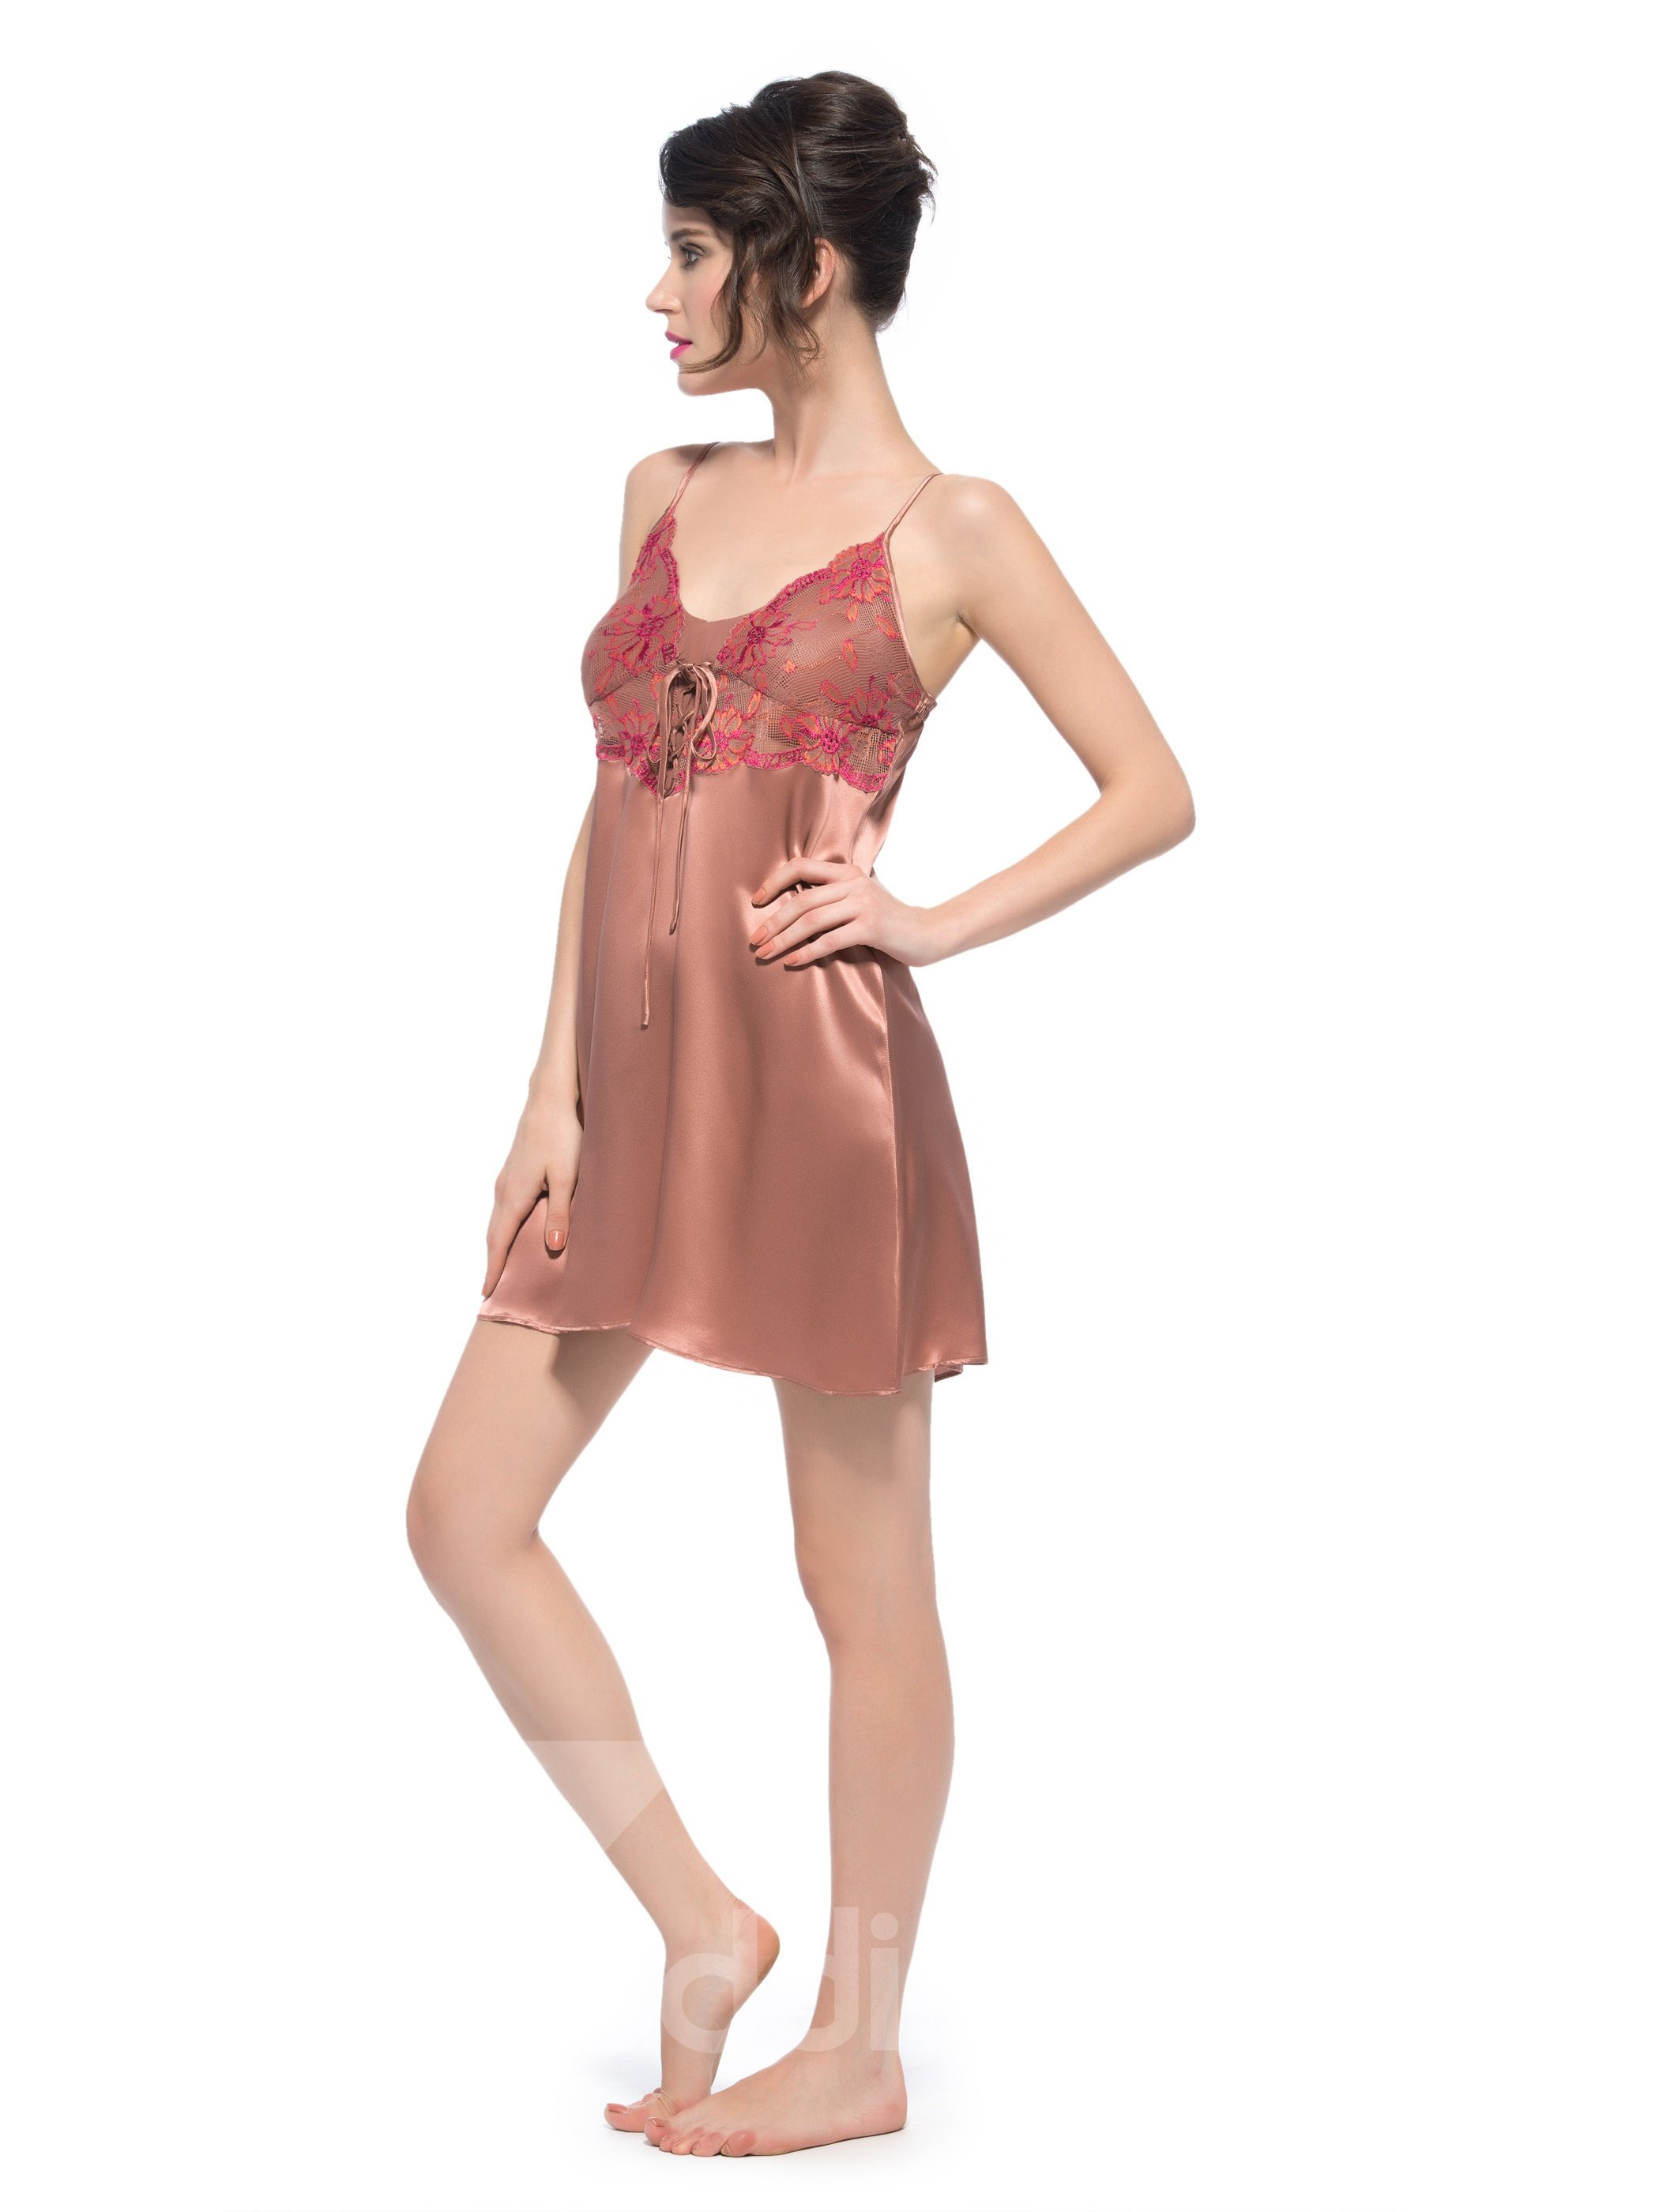 Delicate Open Back Hem Adjustable Built-up Strap Silk Chemise